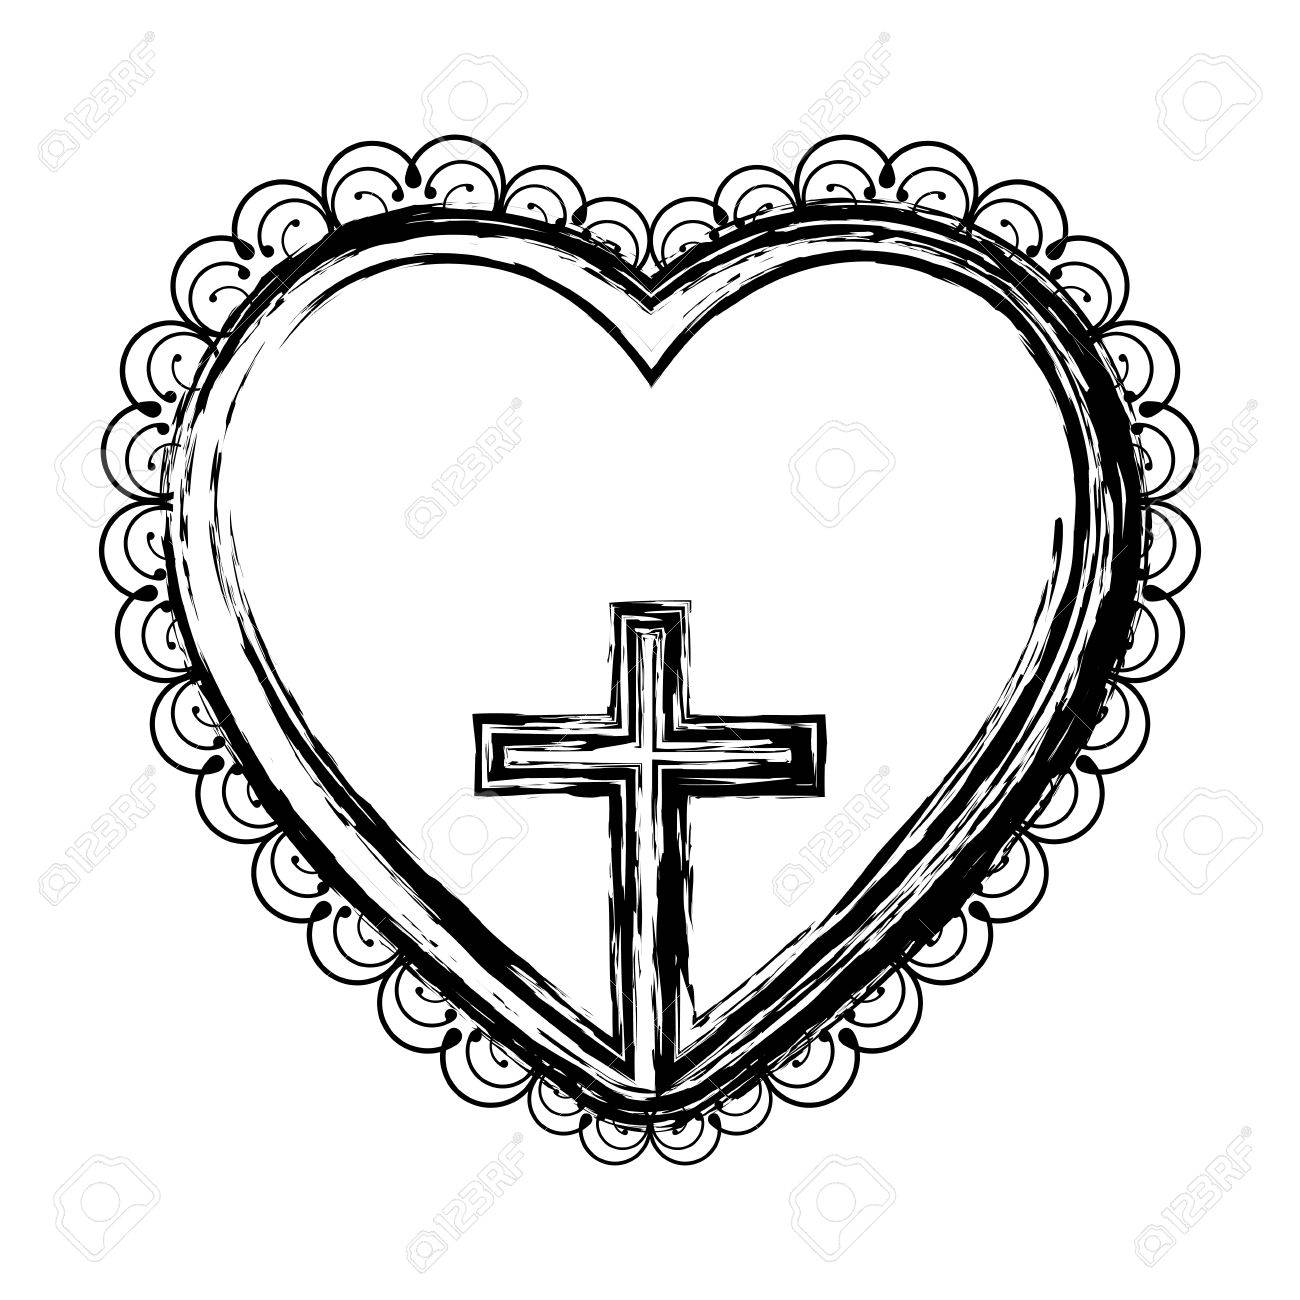 1300x1300 Blurred Silhouette Heart Decorative Frame With Small Wooden Cross